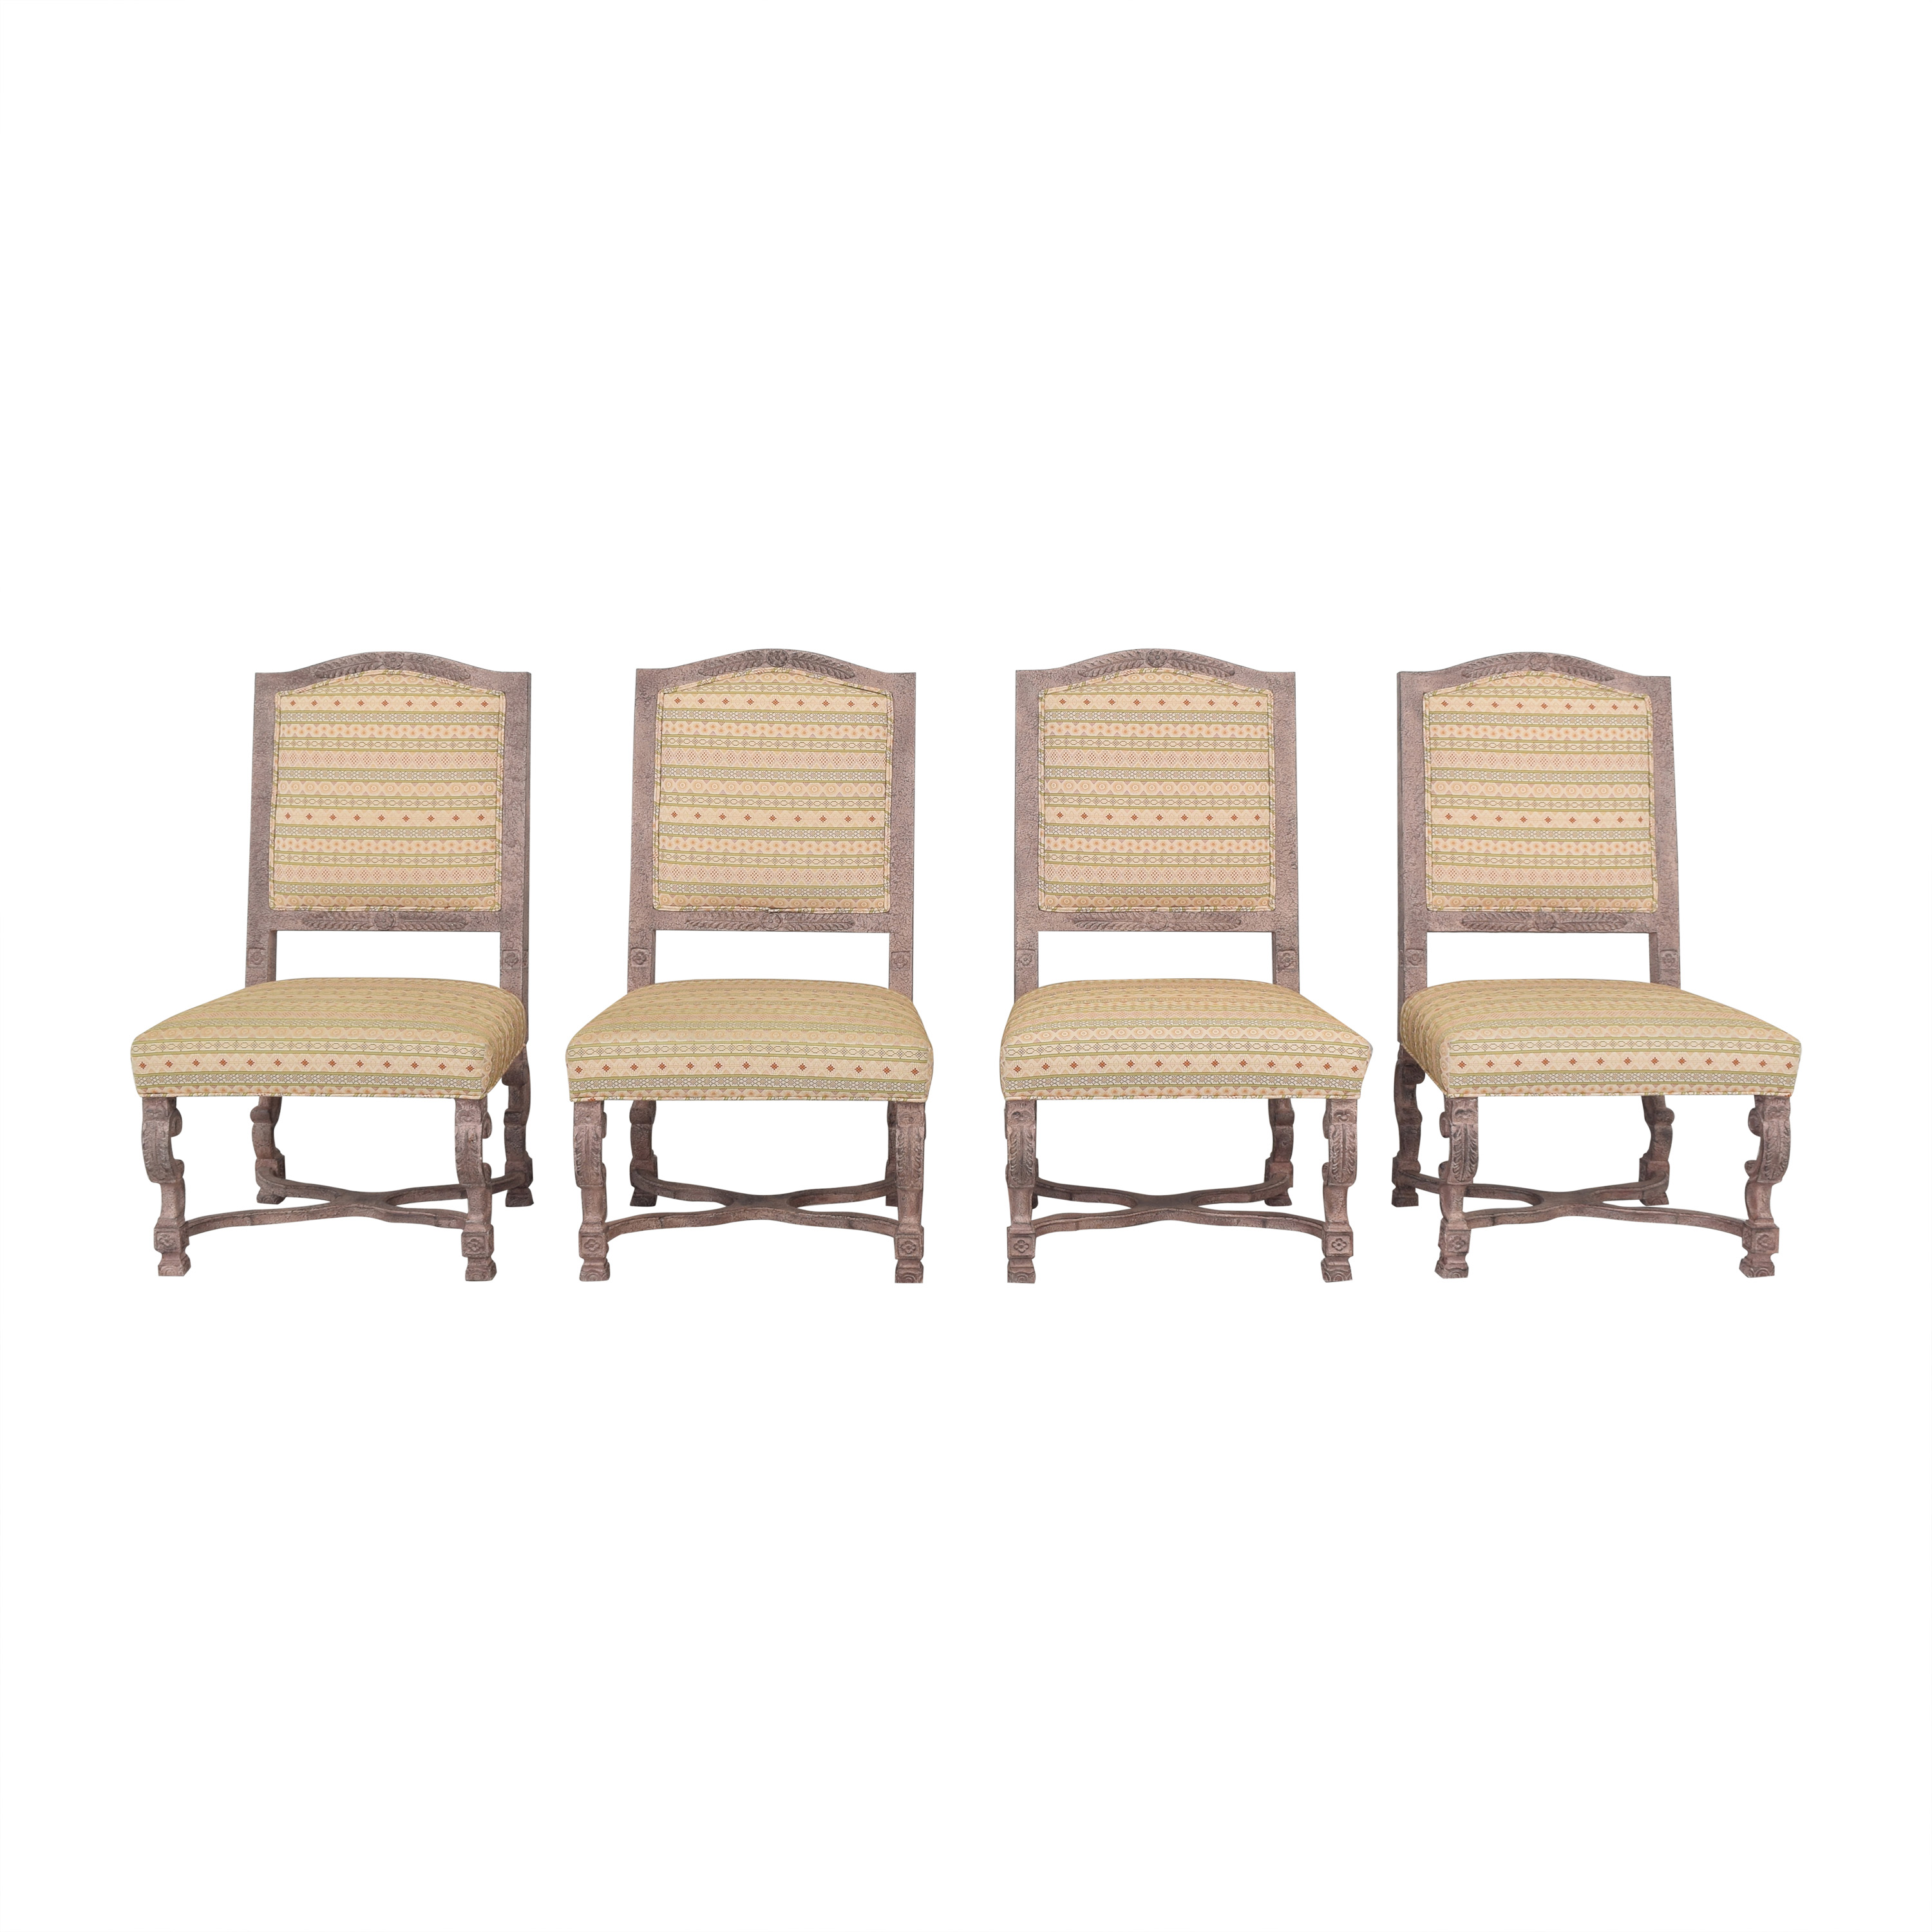 Artistic Frame Artistic Frame Monarque Side Chairs ma